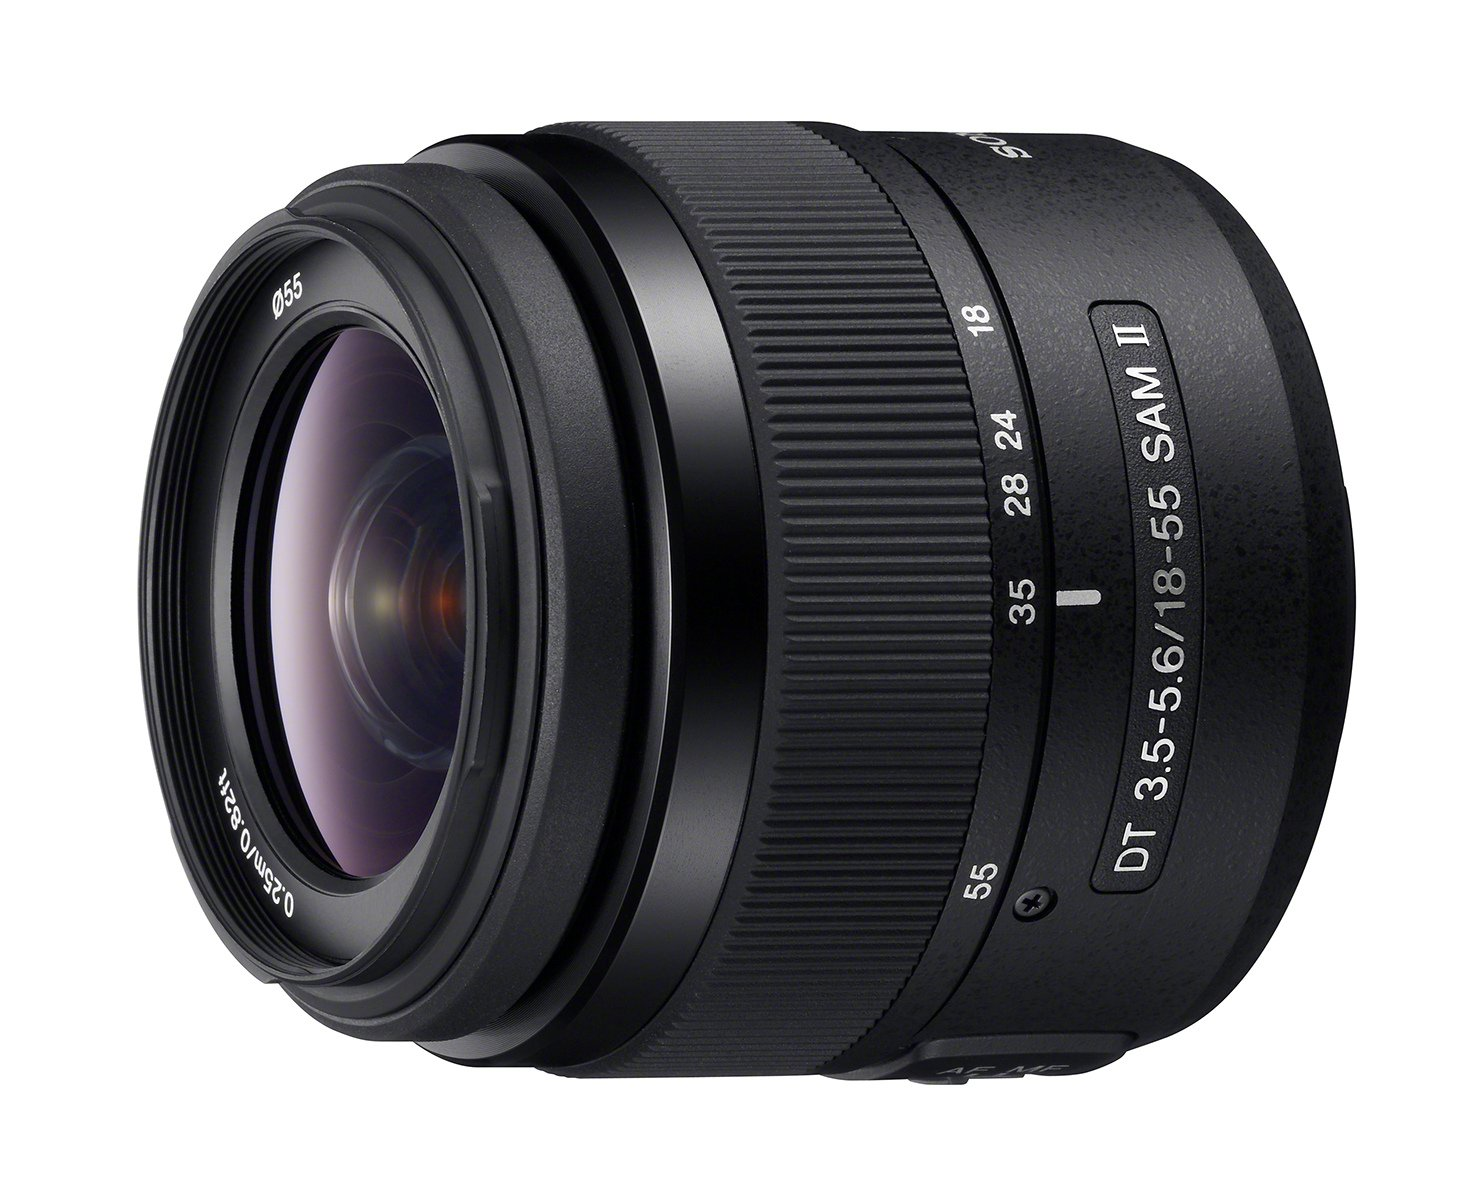 24.2MP A-mount Camera with18-55mm Zoom Lens